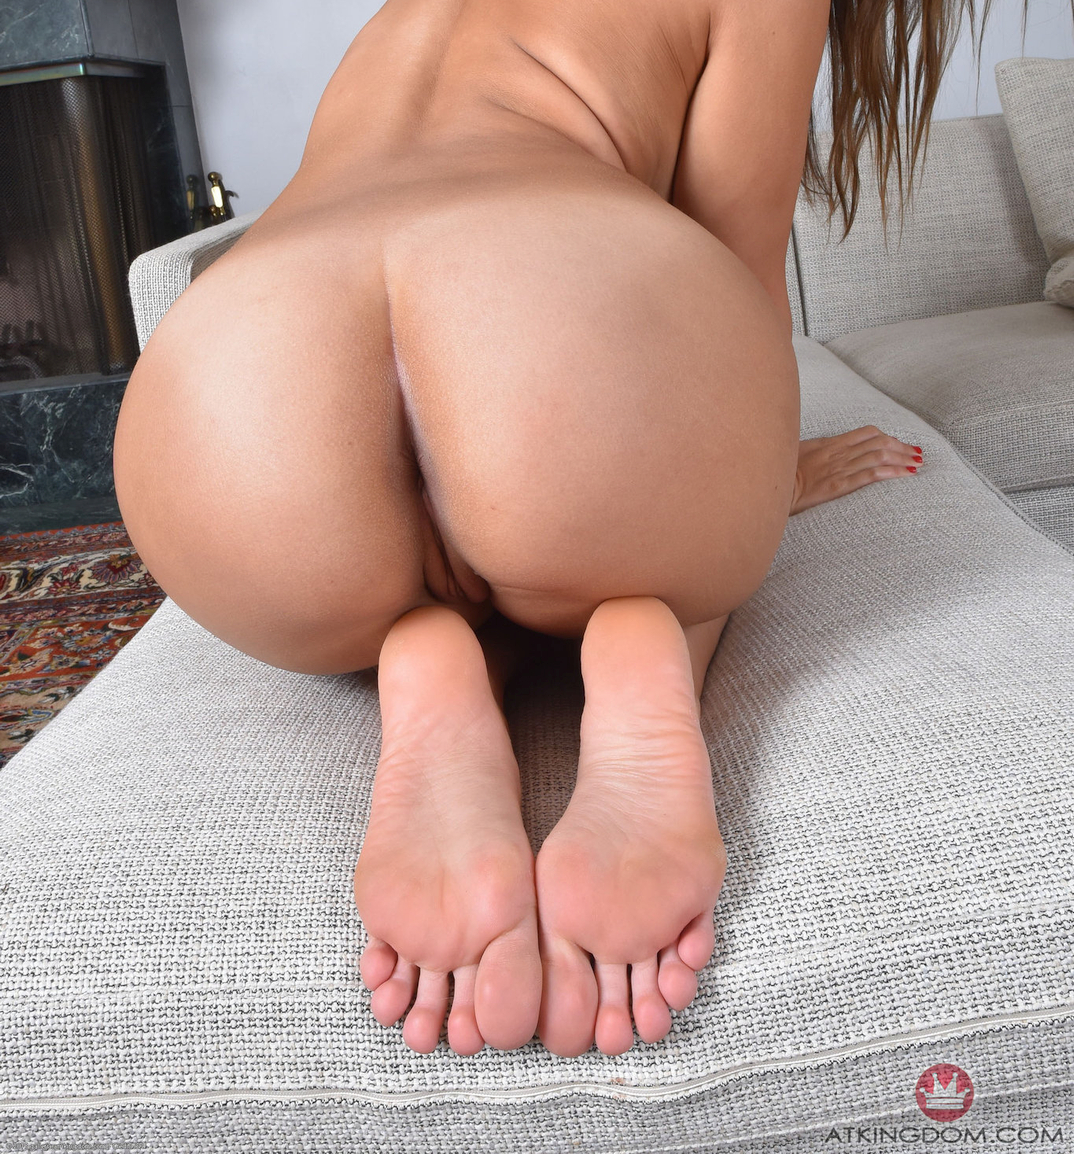 Karter Foxx's ass and feet